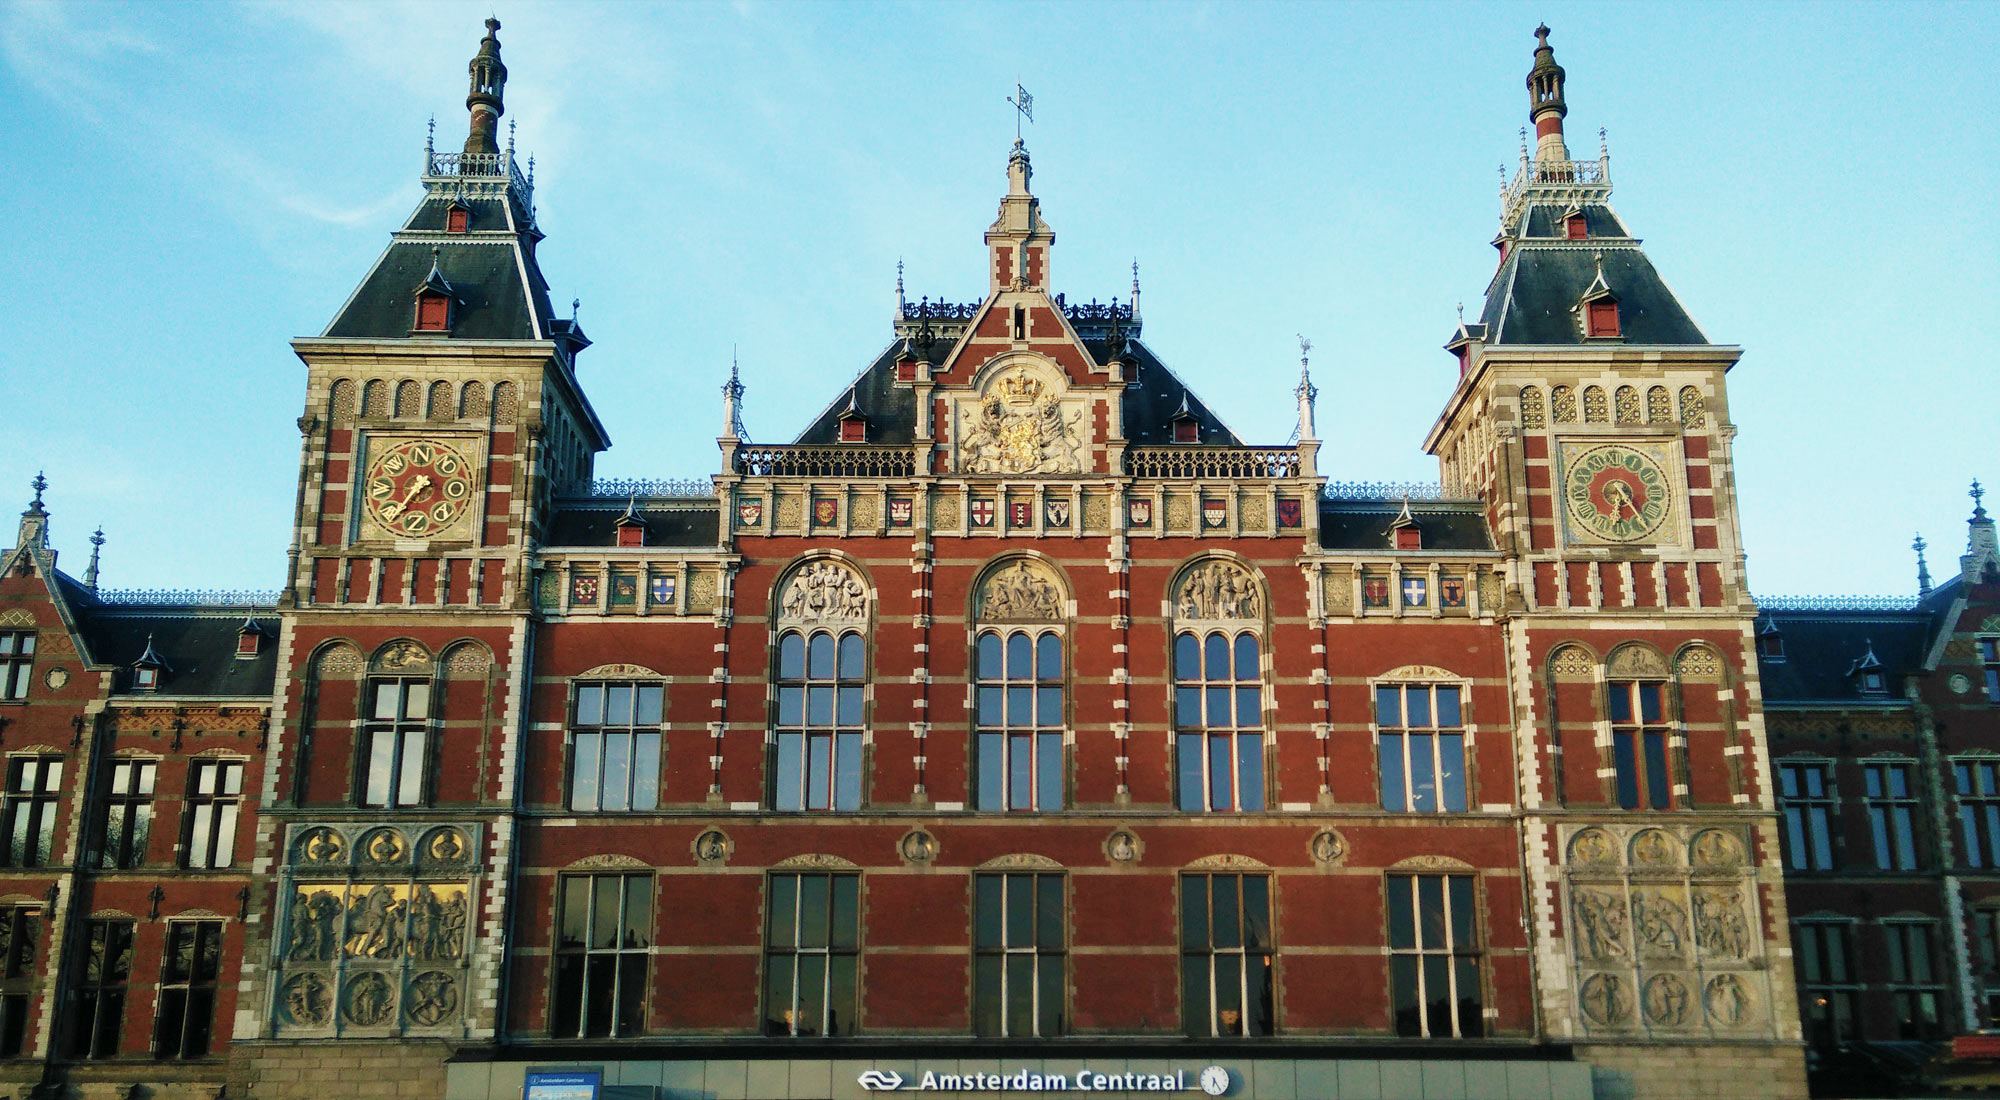 Amsterdam Centraal, Hauptbahnhof, central train station